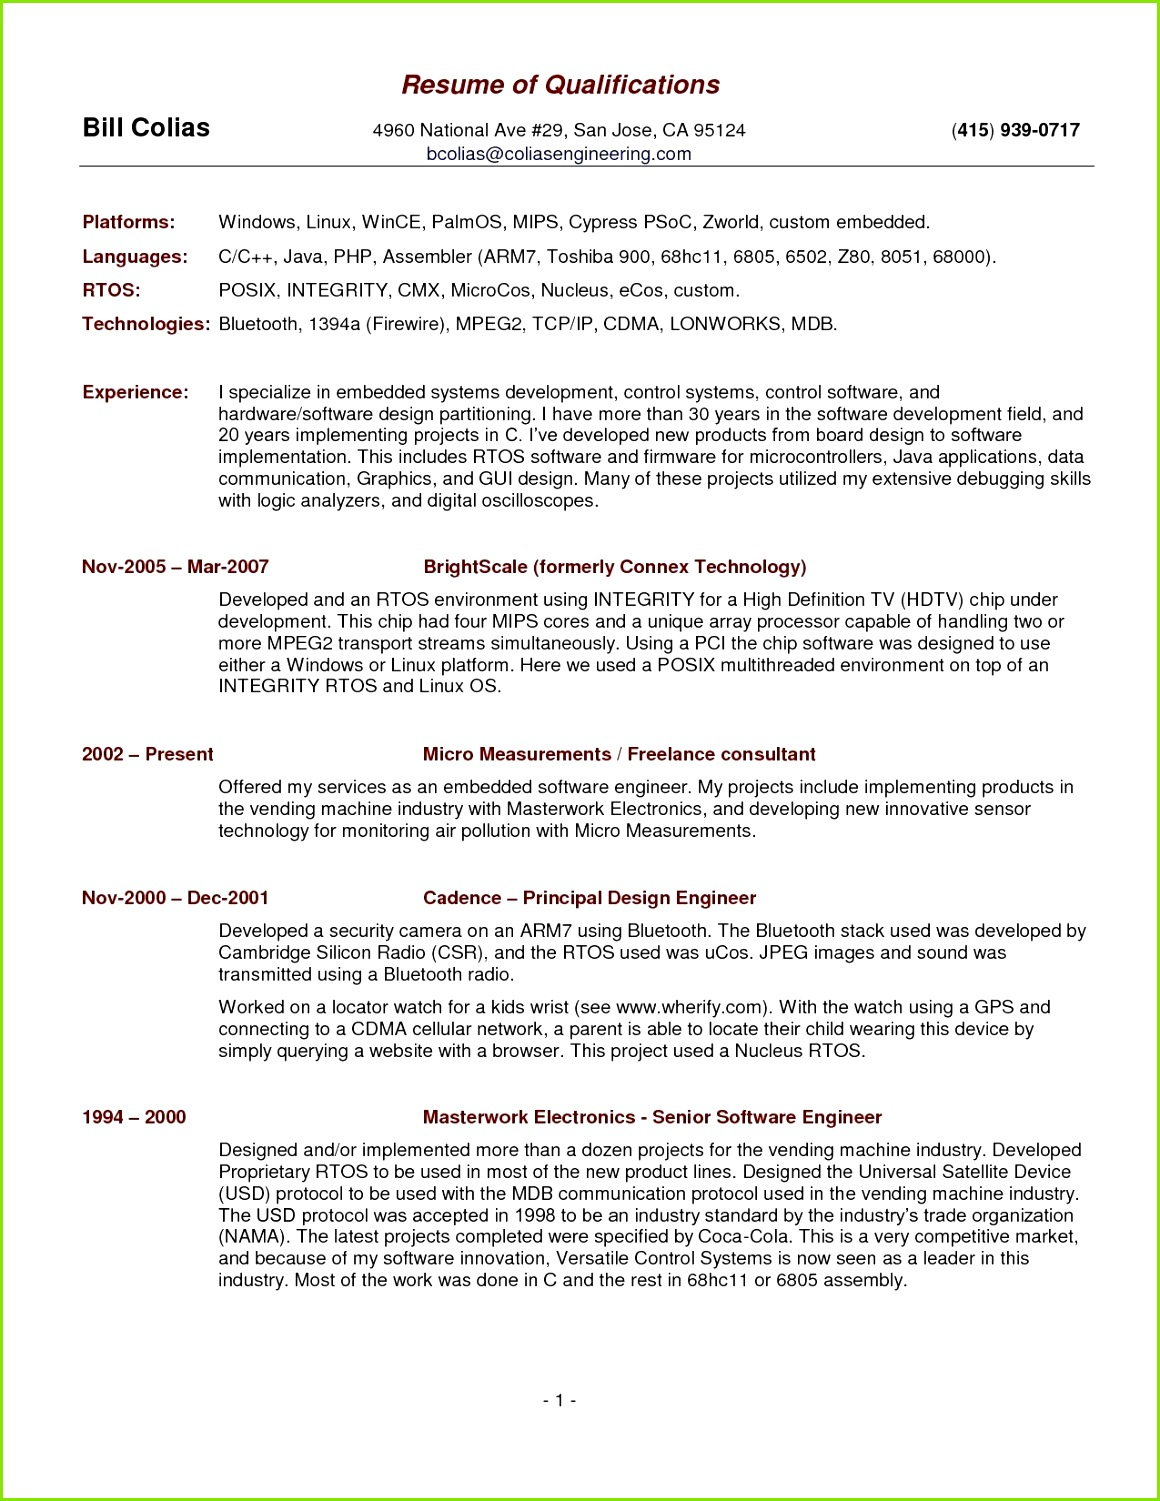 Free Teacher Resume Templates Lovely Beautiful Simple Resume formats Free Teacher Resume Templates Lovely Fresh